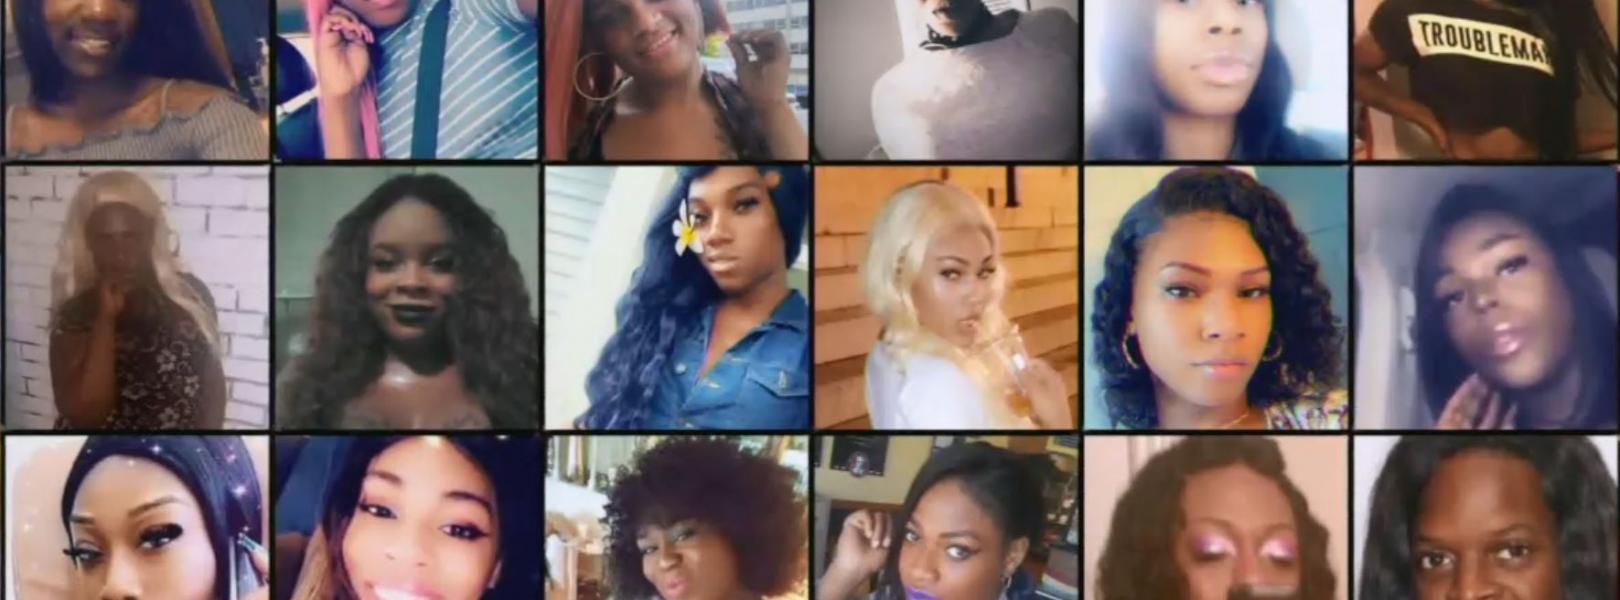 Trans women of color murdered in 2019